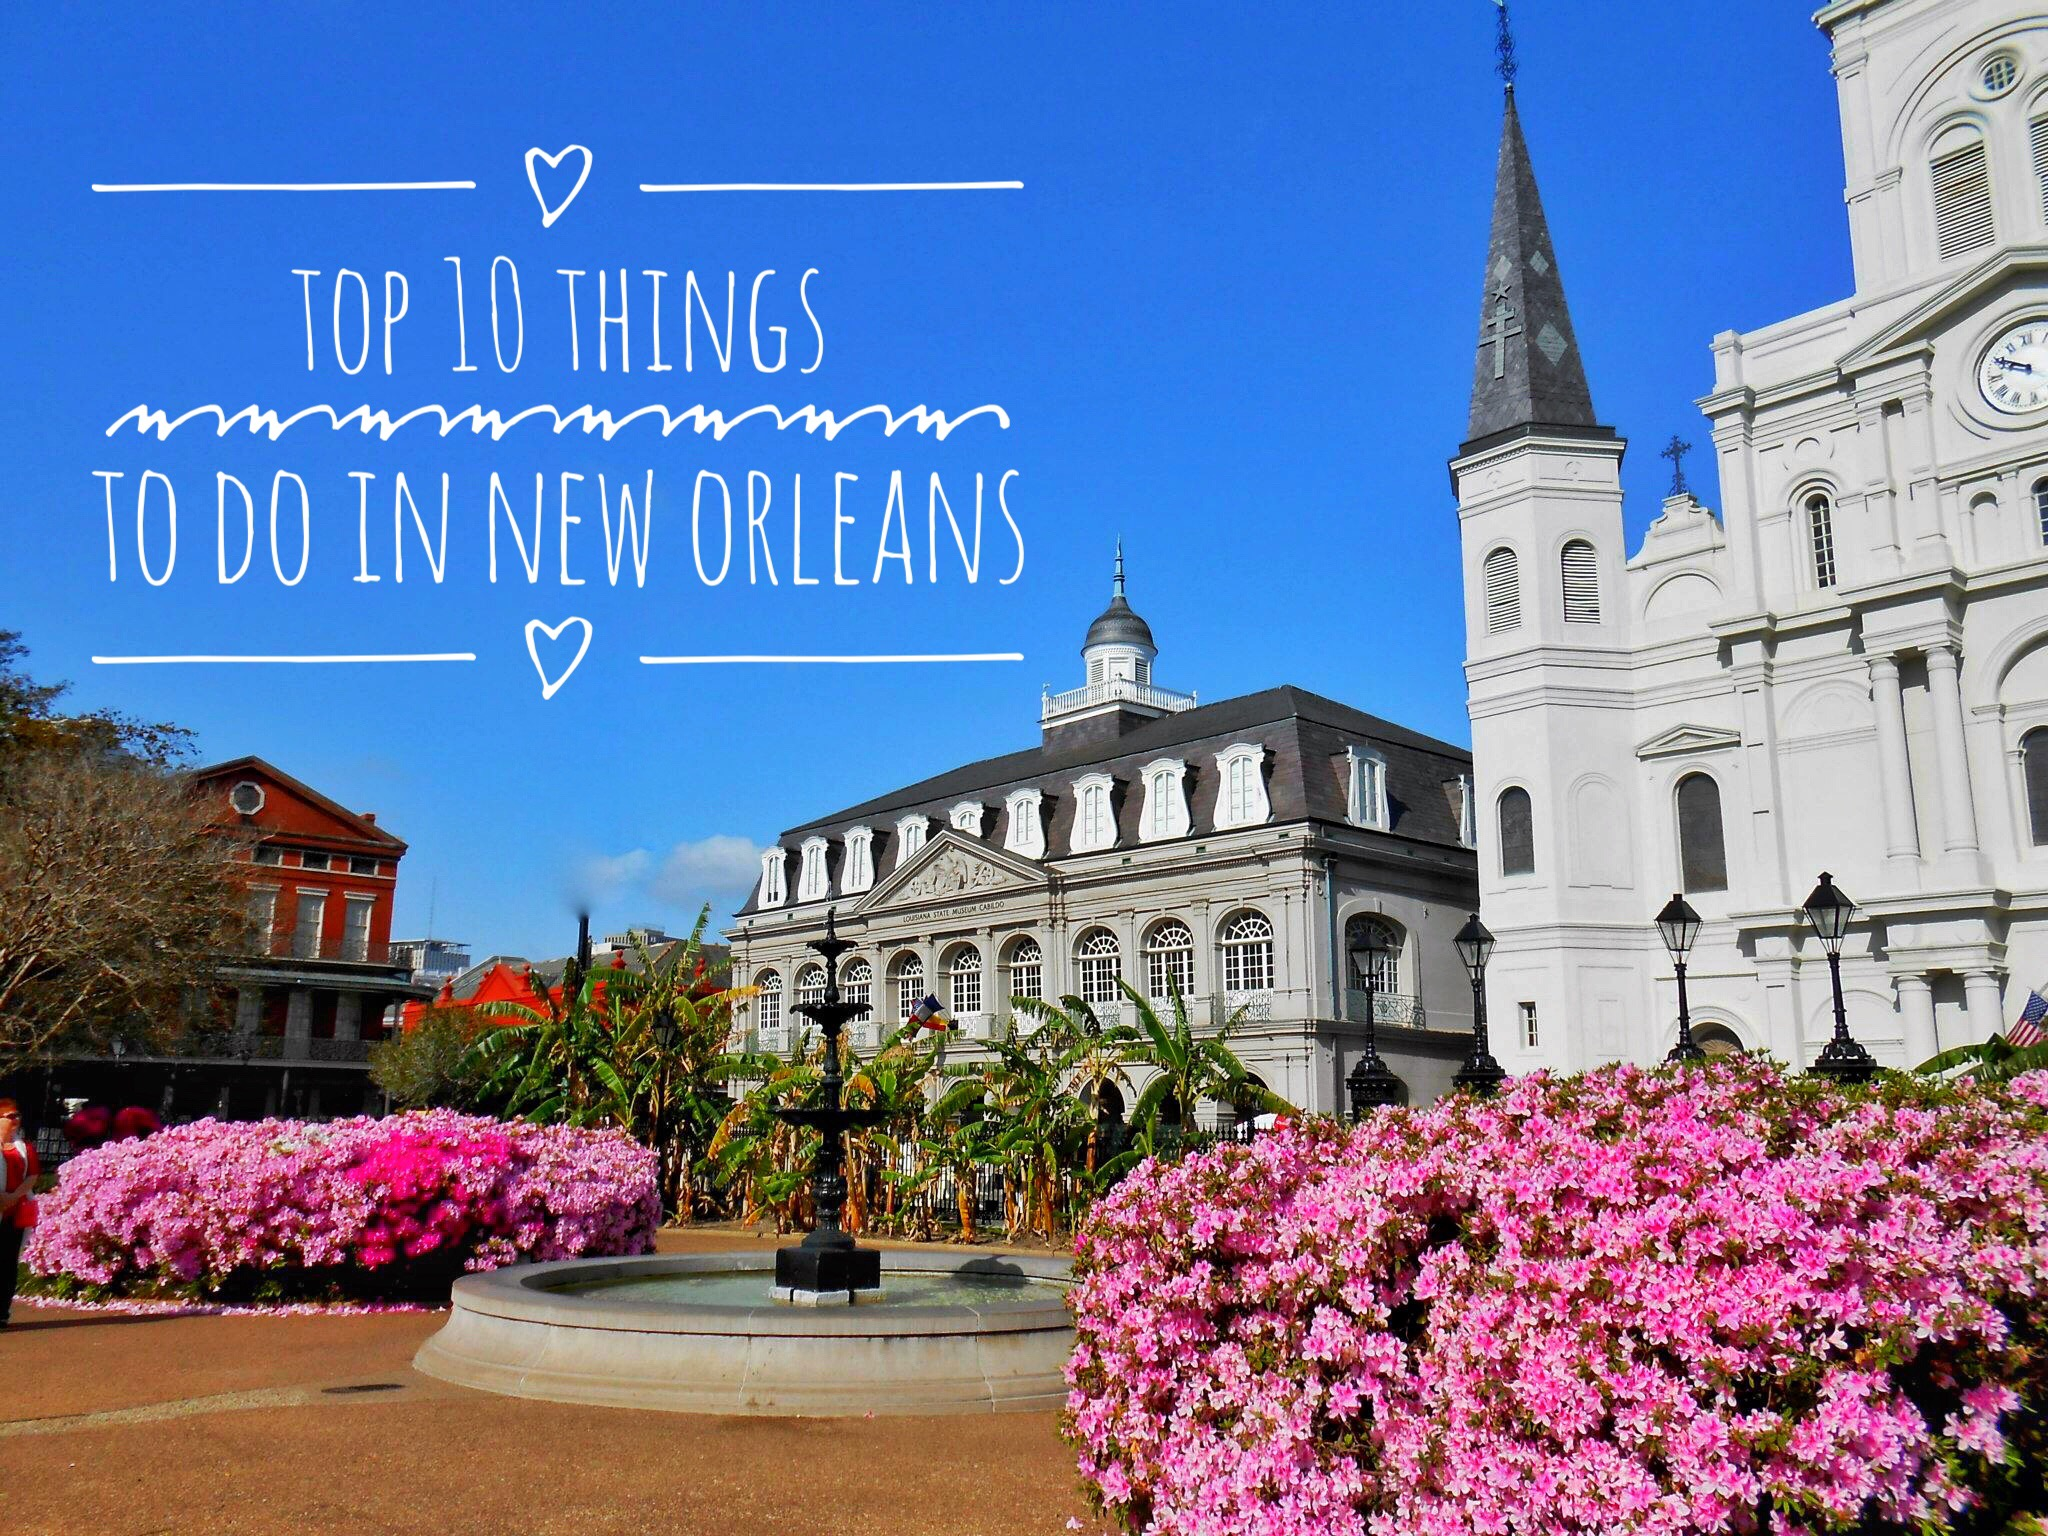 My top 10 things to do in new orleans le travels for Things to do in mew orleans